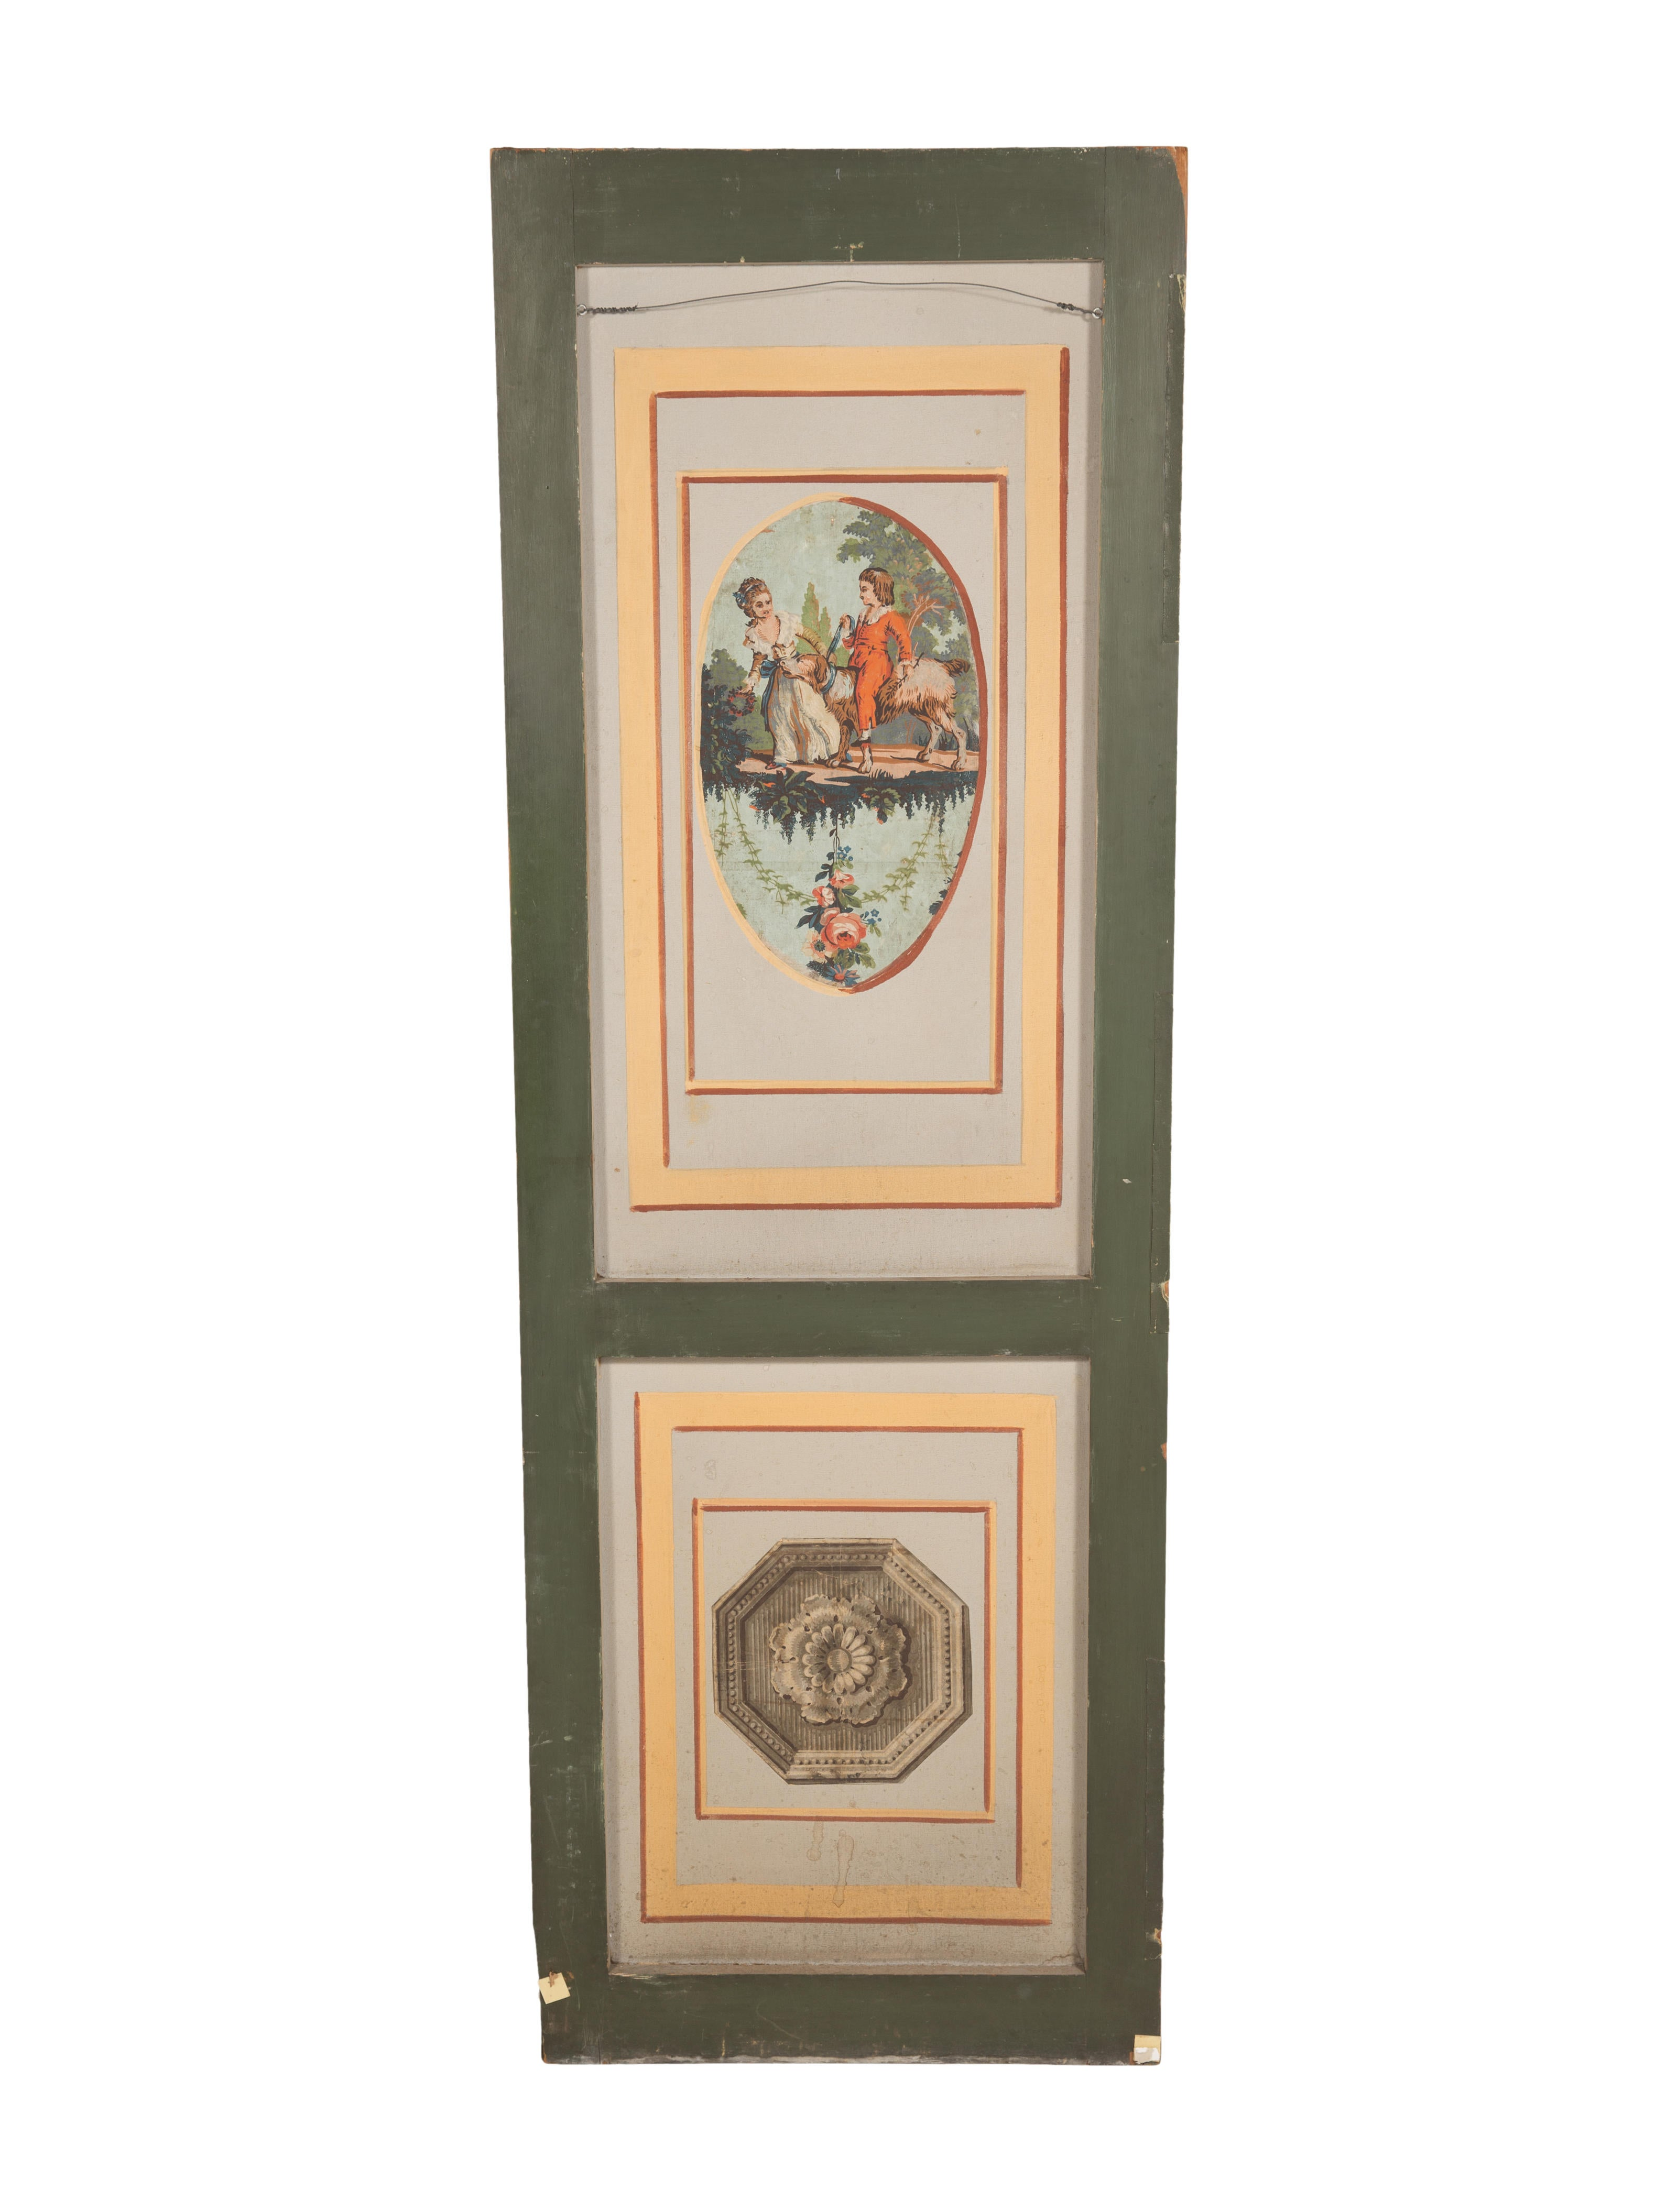 French 19th century hand painted door panel decor and for Home decor and accessories